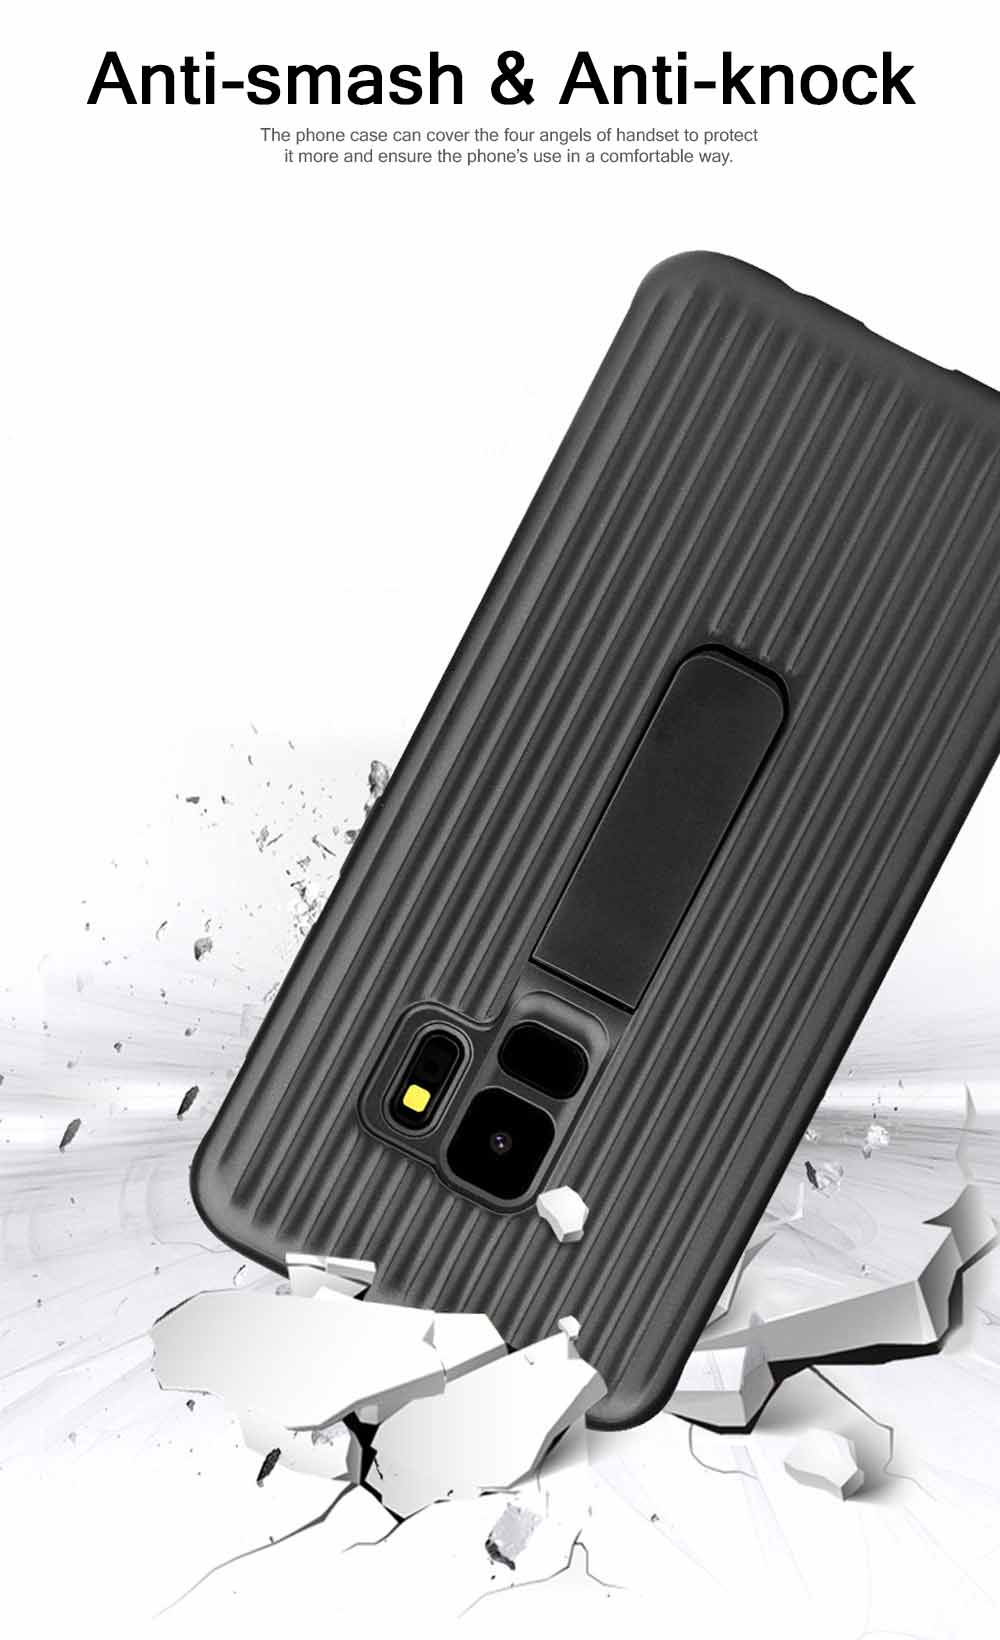 New-style Samsung Phone Case for Galaxy S9 & S9 Plus Vehicle-Mounted Protective Case Vertical Support Phone Case 5